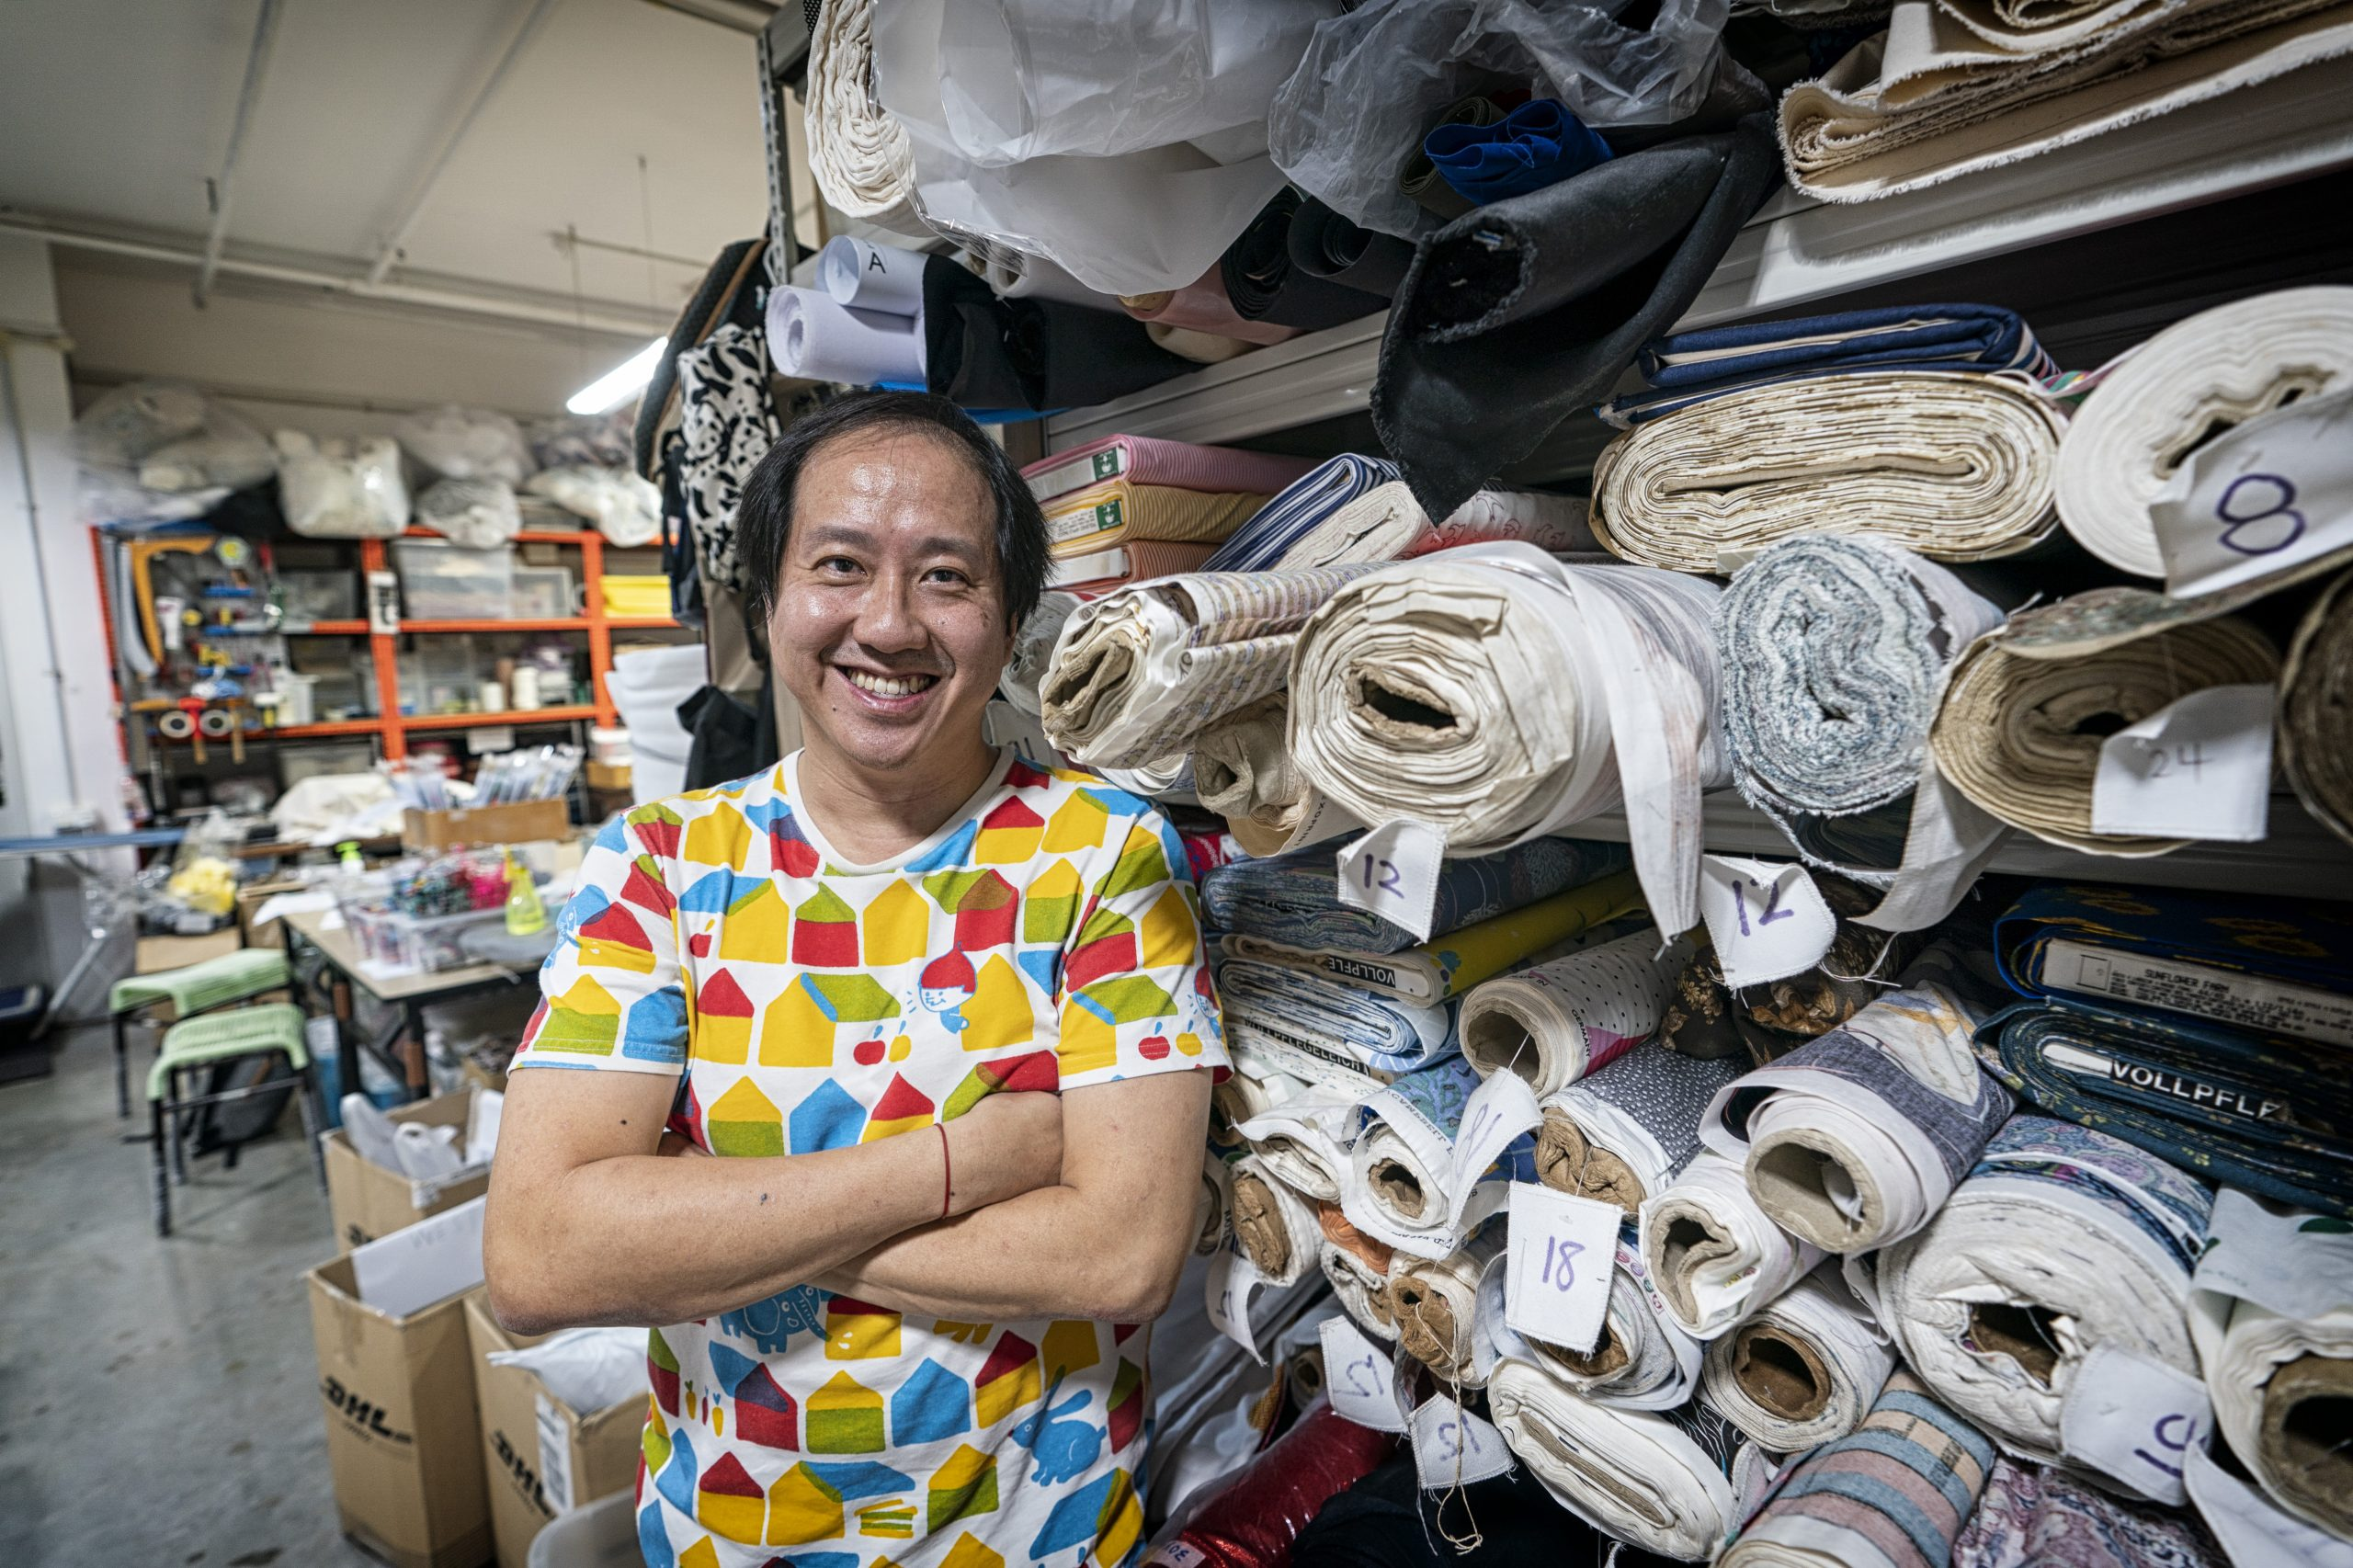 Benny Ng, founder and director of sewing and printing studio, Independent Market is heartened by the positive feedback that his masks have facilitated better communication for the deaf community in Singapore.